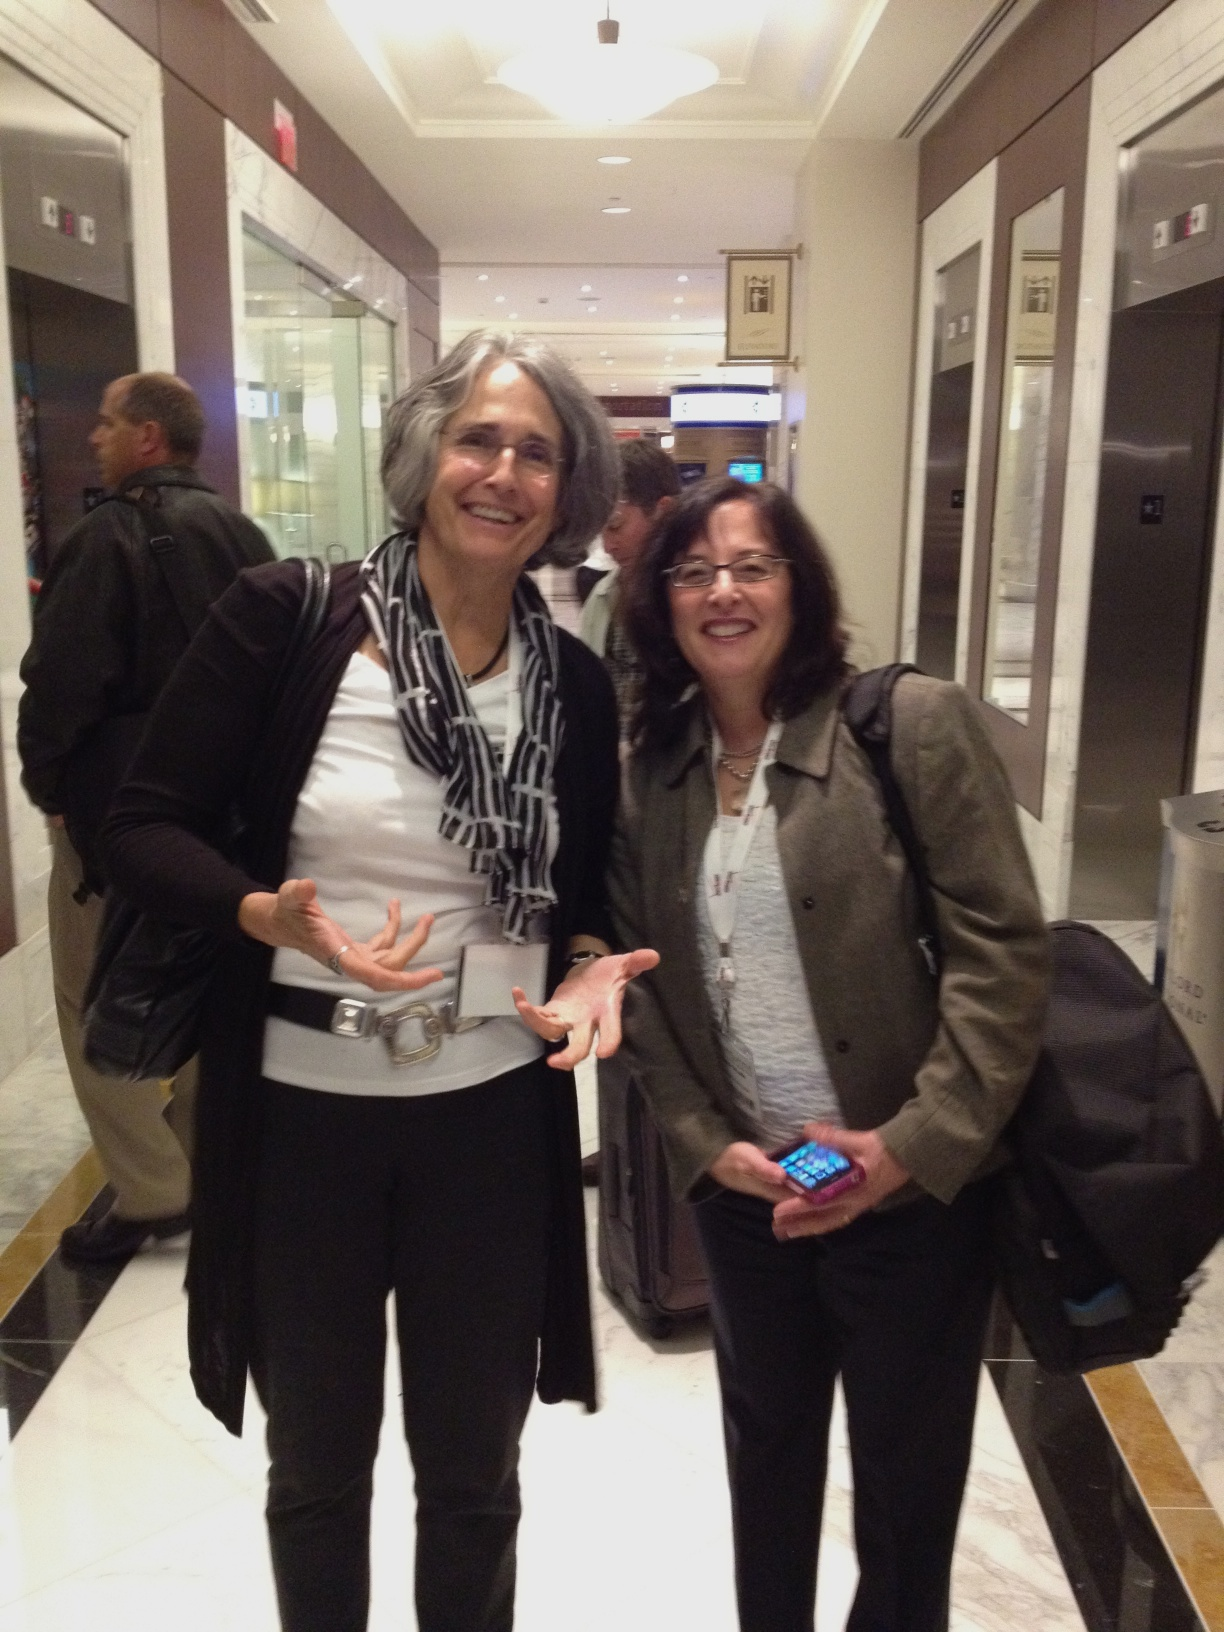 Most exciting thing in medicine is not going on in medicine - Podcast with Sue Woods, MD & Paulanne Balch, MD